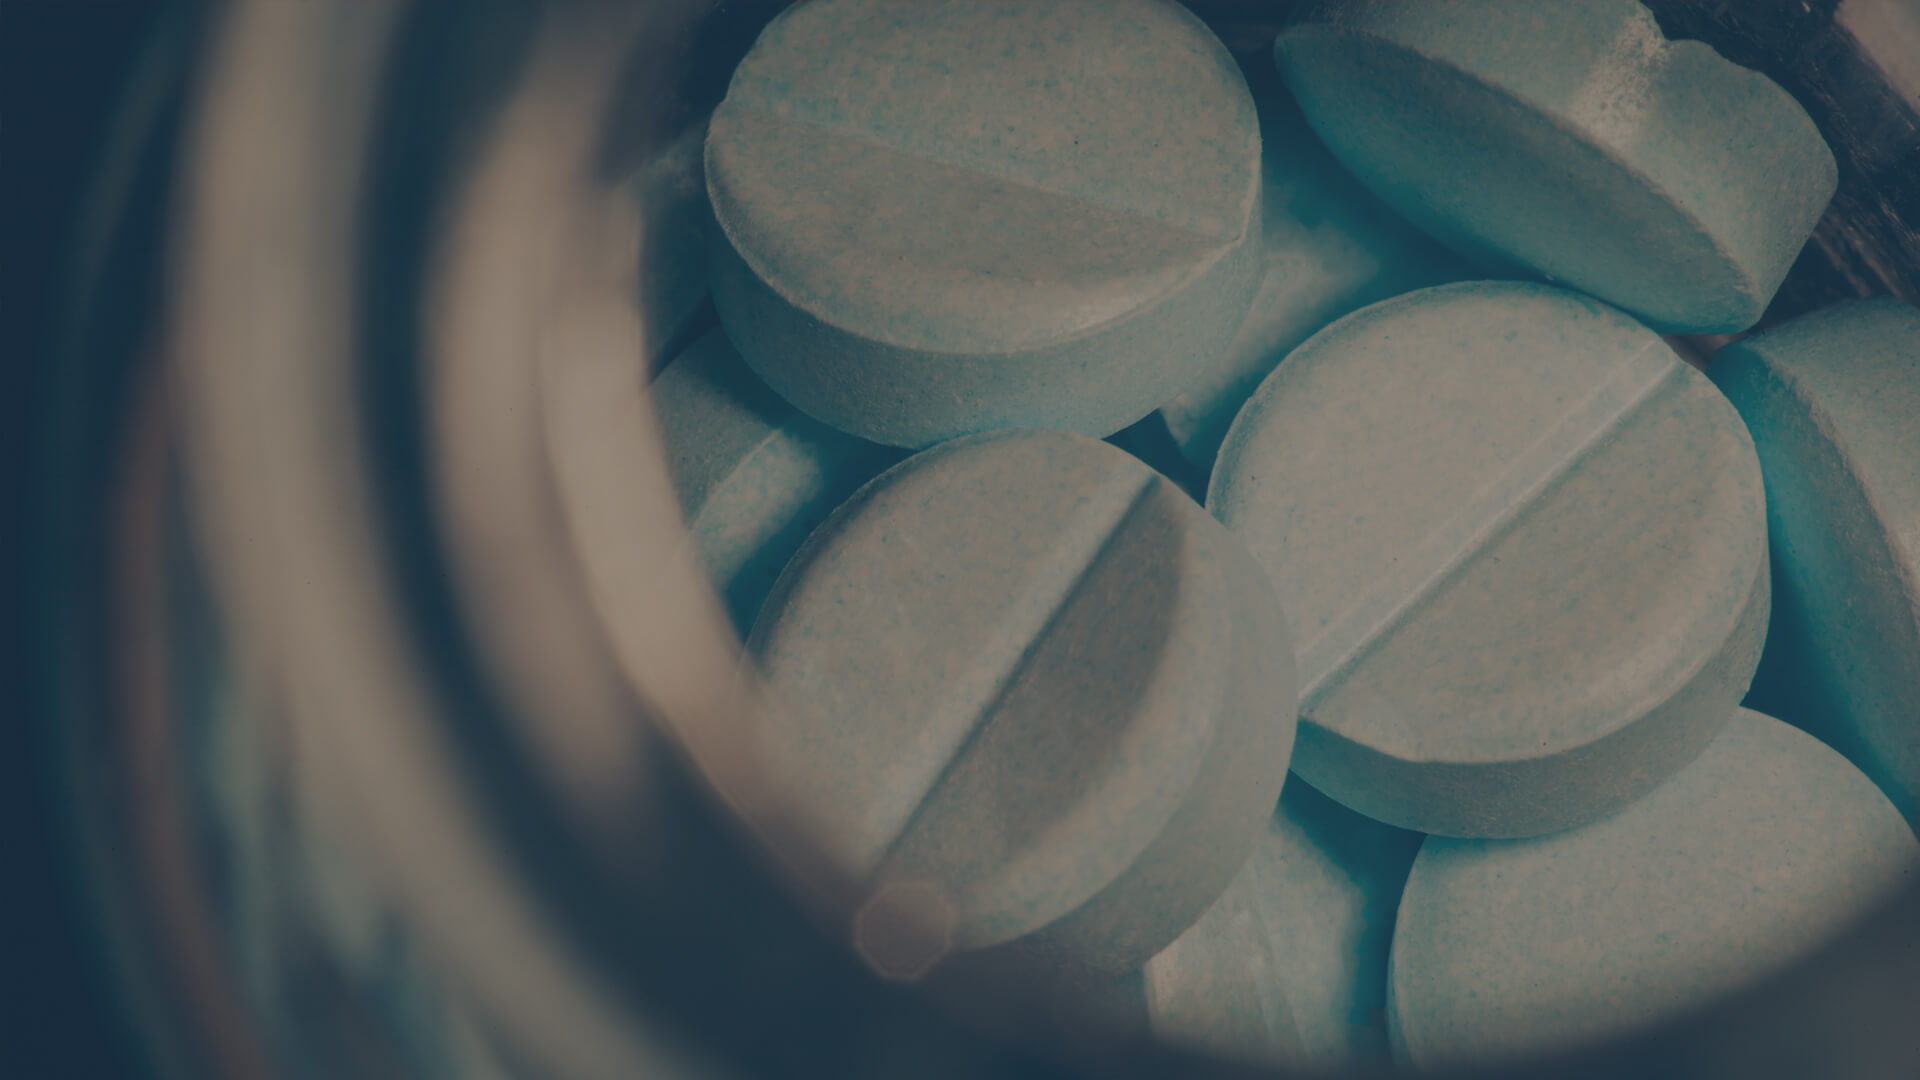 Opioid Addiction: A New Challenge for Community Health Care Professionals